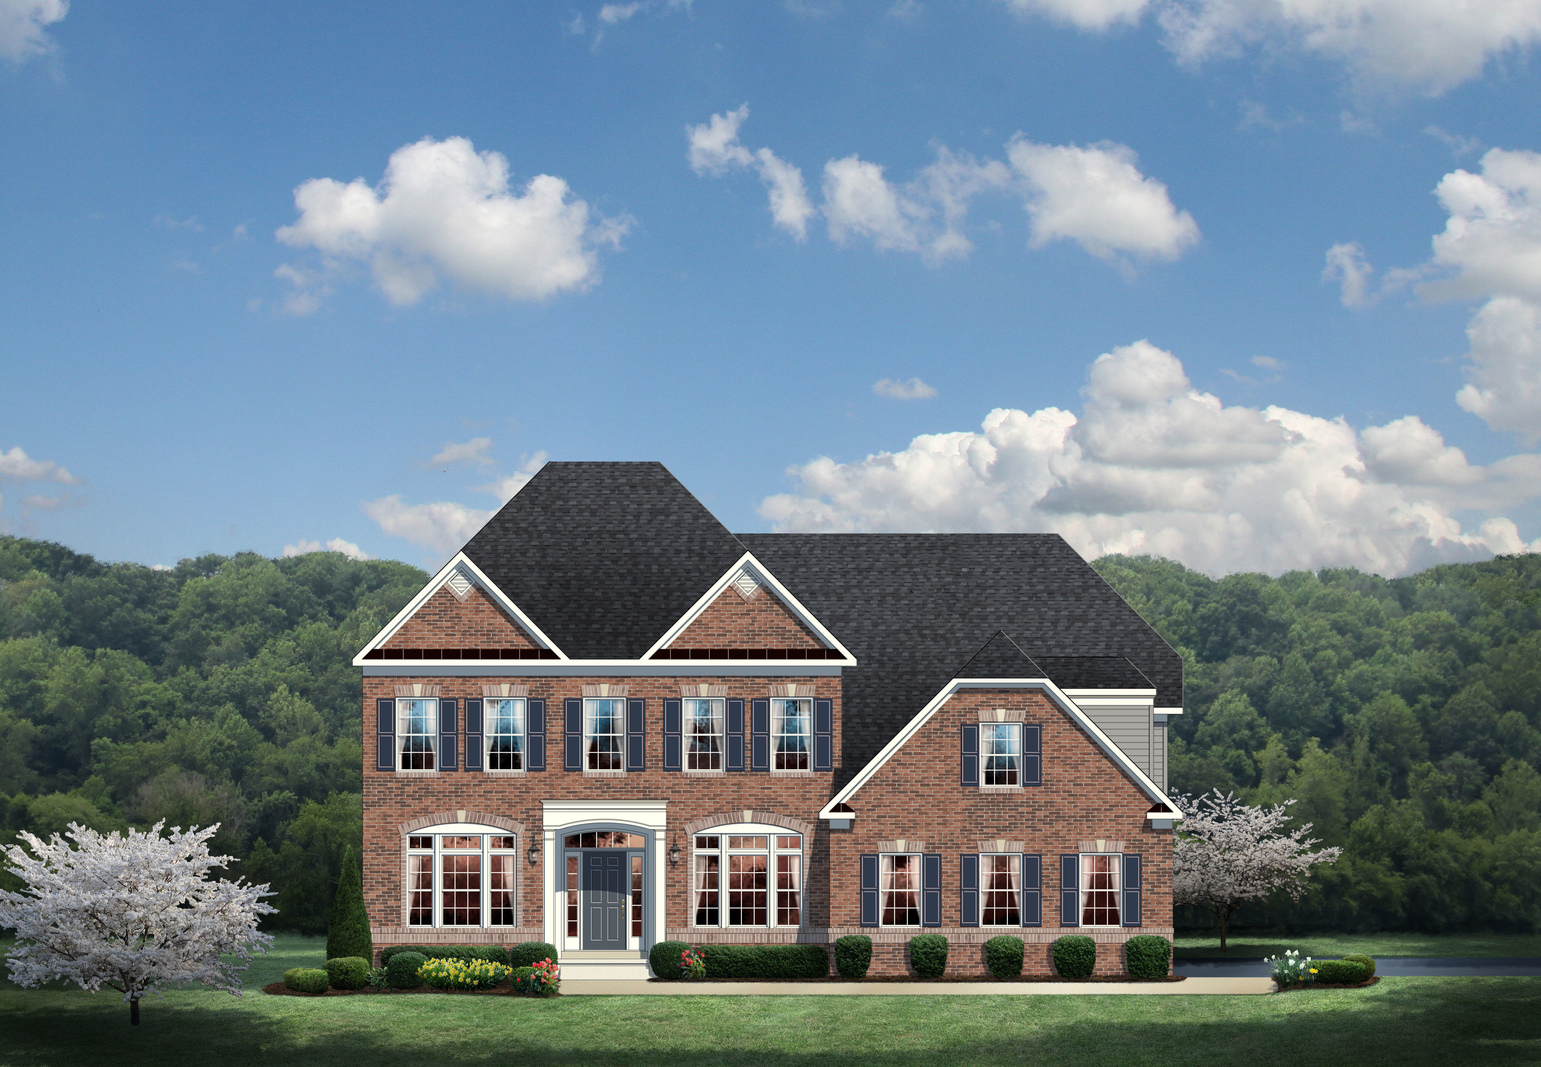 New Construction Single Family Homes For Sale Ravenna: New Construction Single-Family Homes For Sale -Ellington